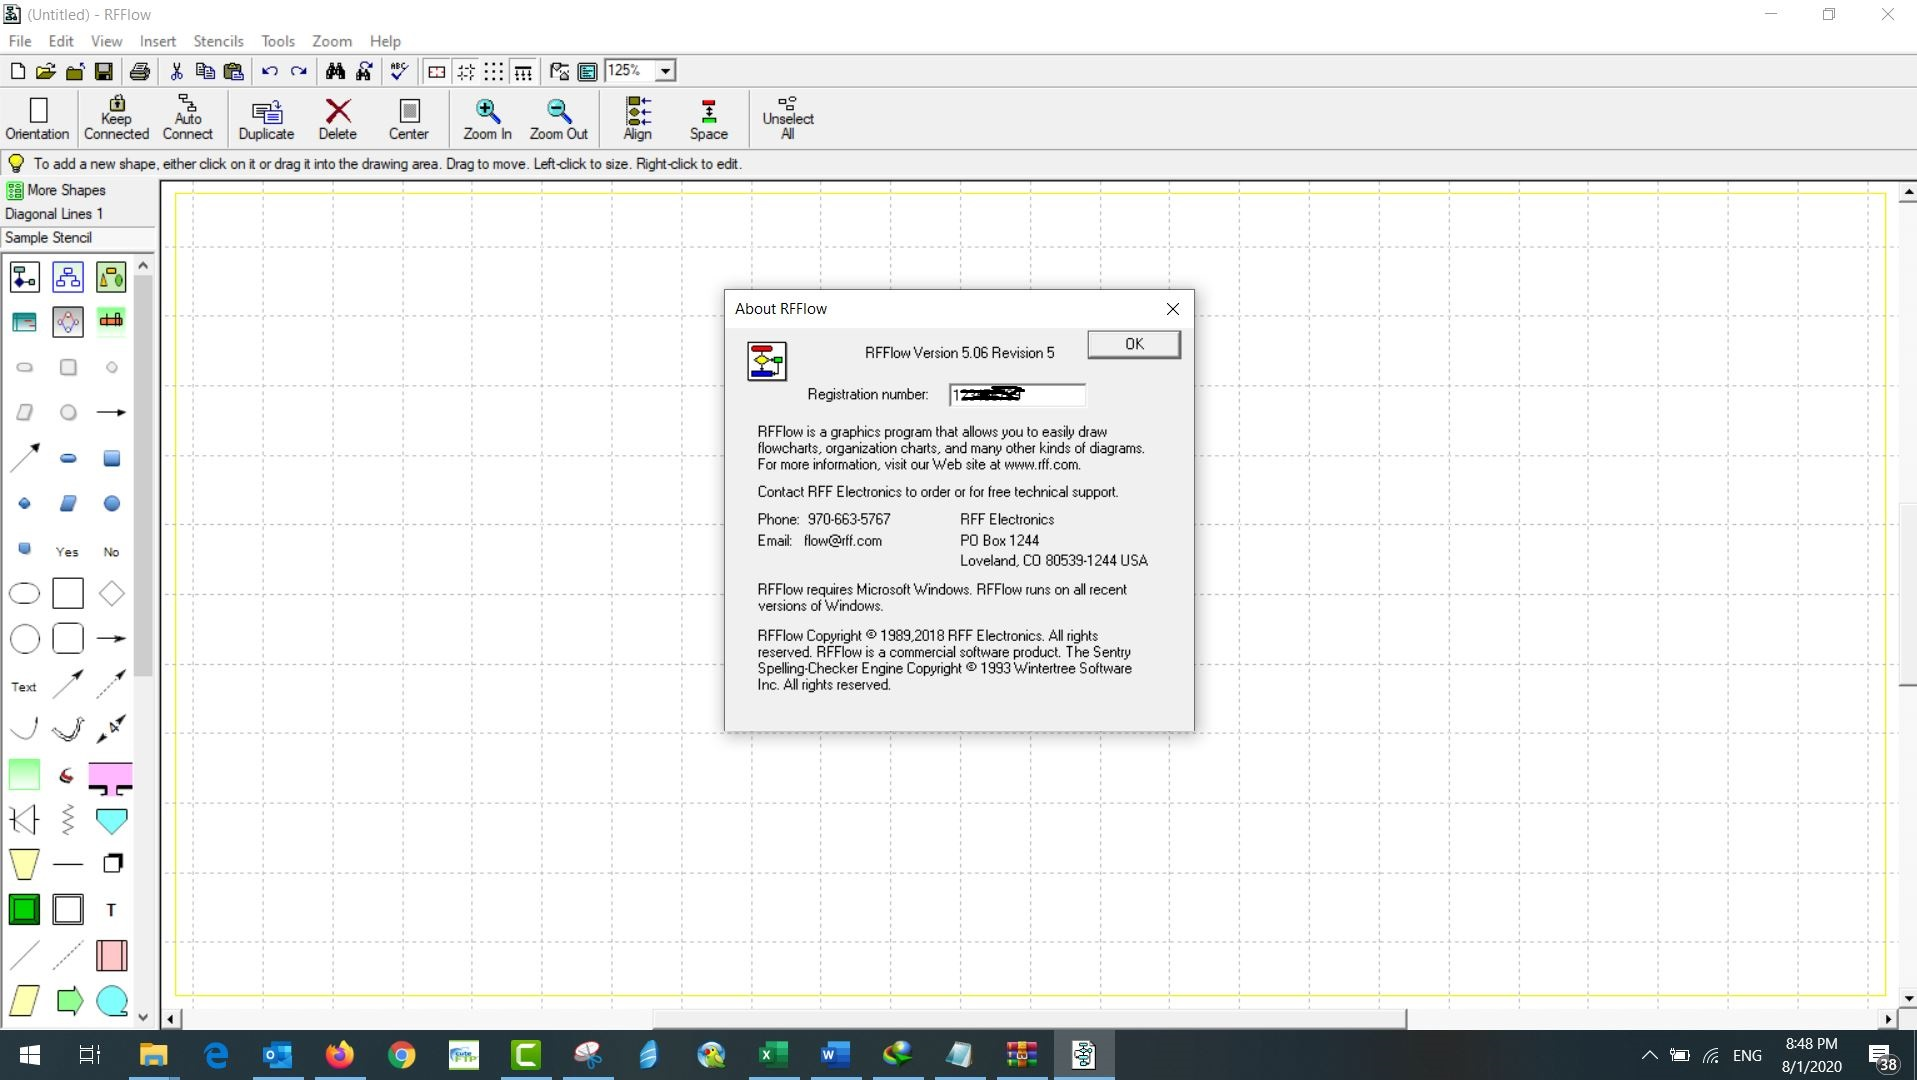 Working with RFFlow 5.06 Revision 5 full license